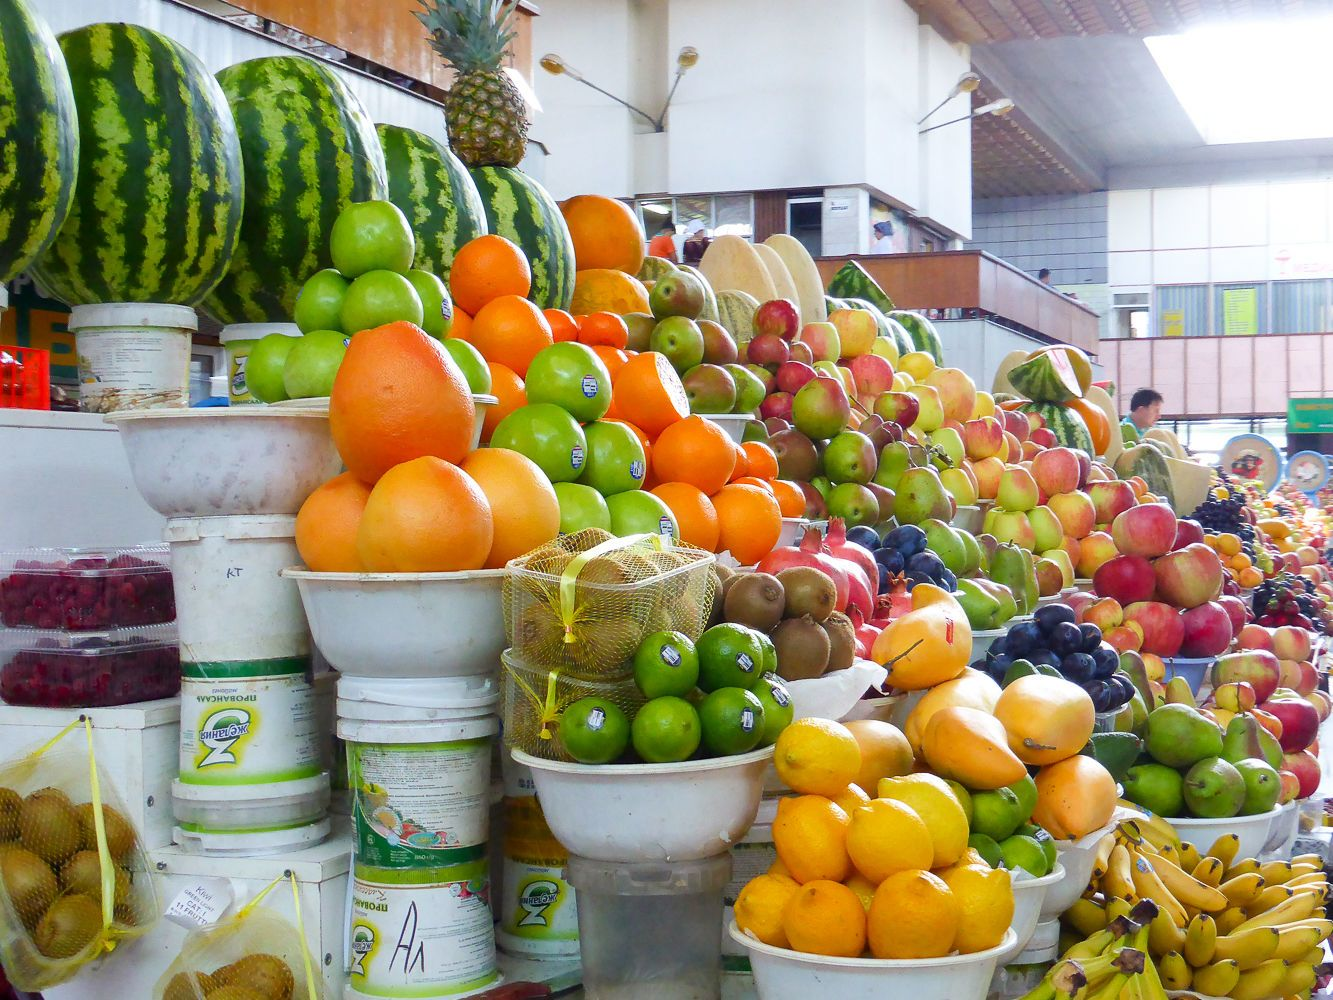 Fruits in Central Asian market